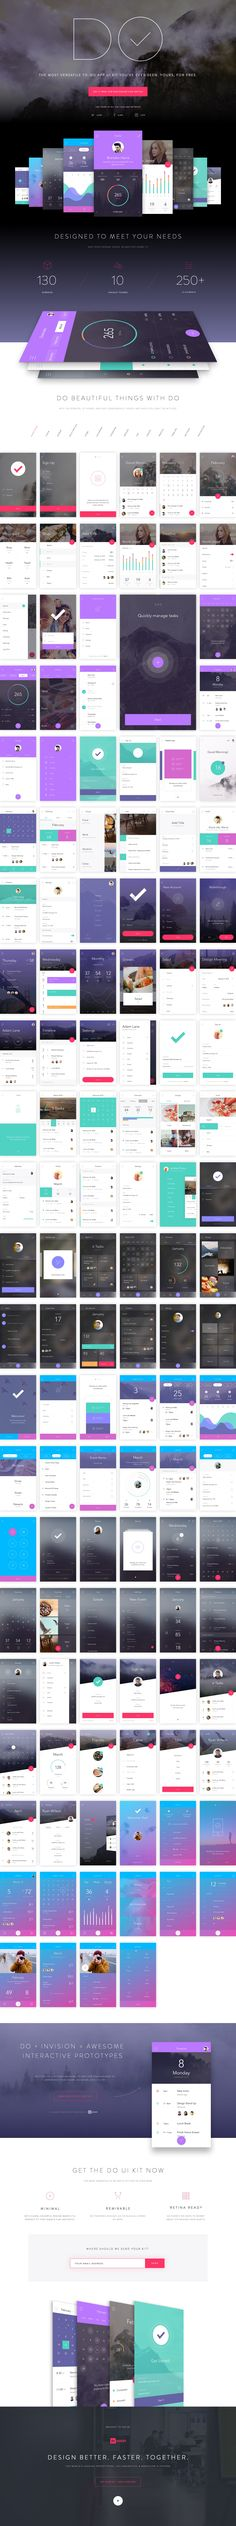 Loves Data Loves || Get DO UI Kit for Photoshop & Sketch by Anton Aheichanka…